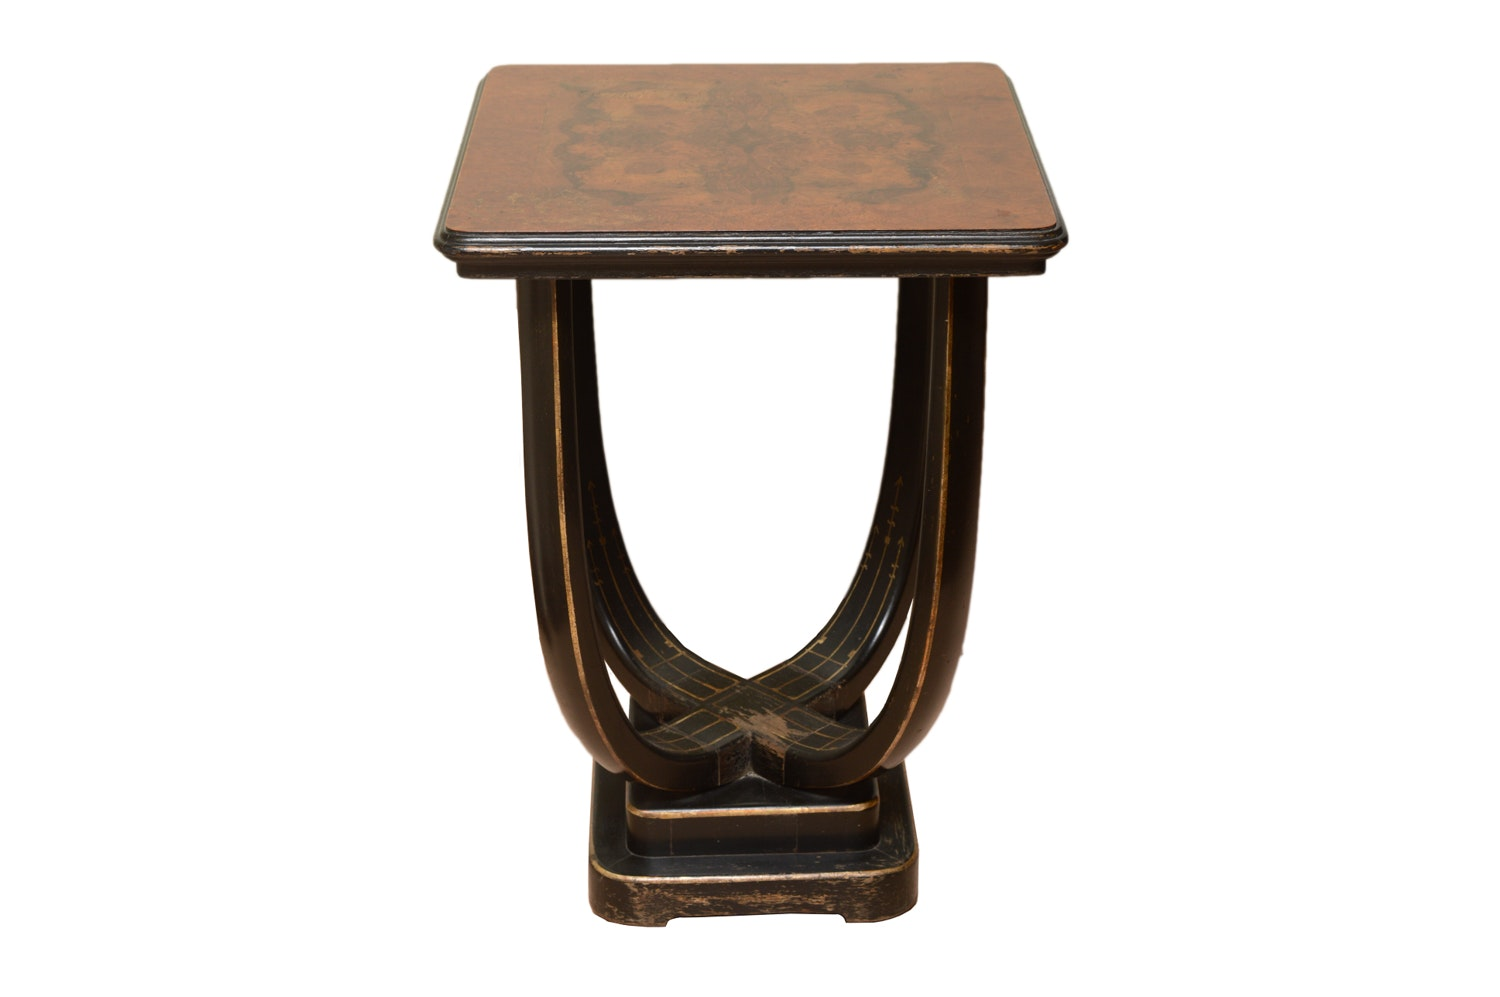 Vintage Art Deco Style Accent Table by Ketcham & Rothschild Inc.